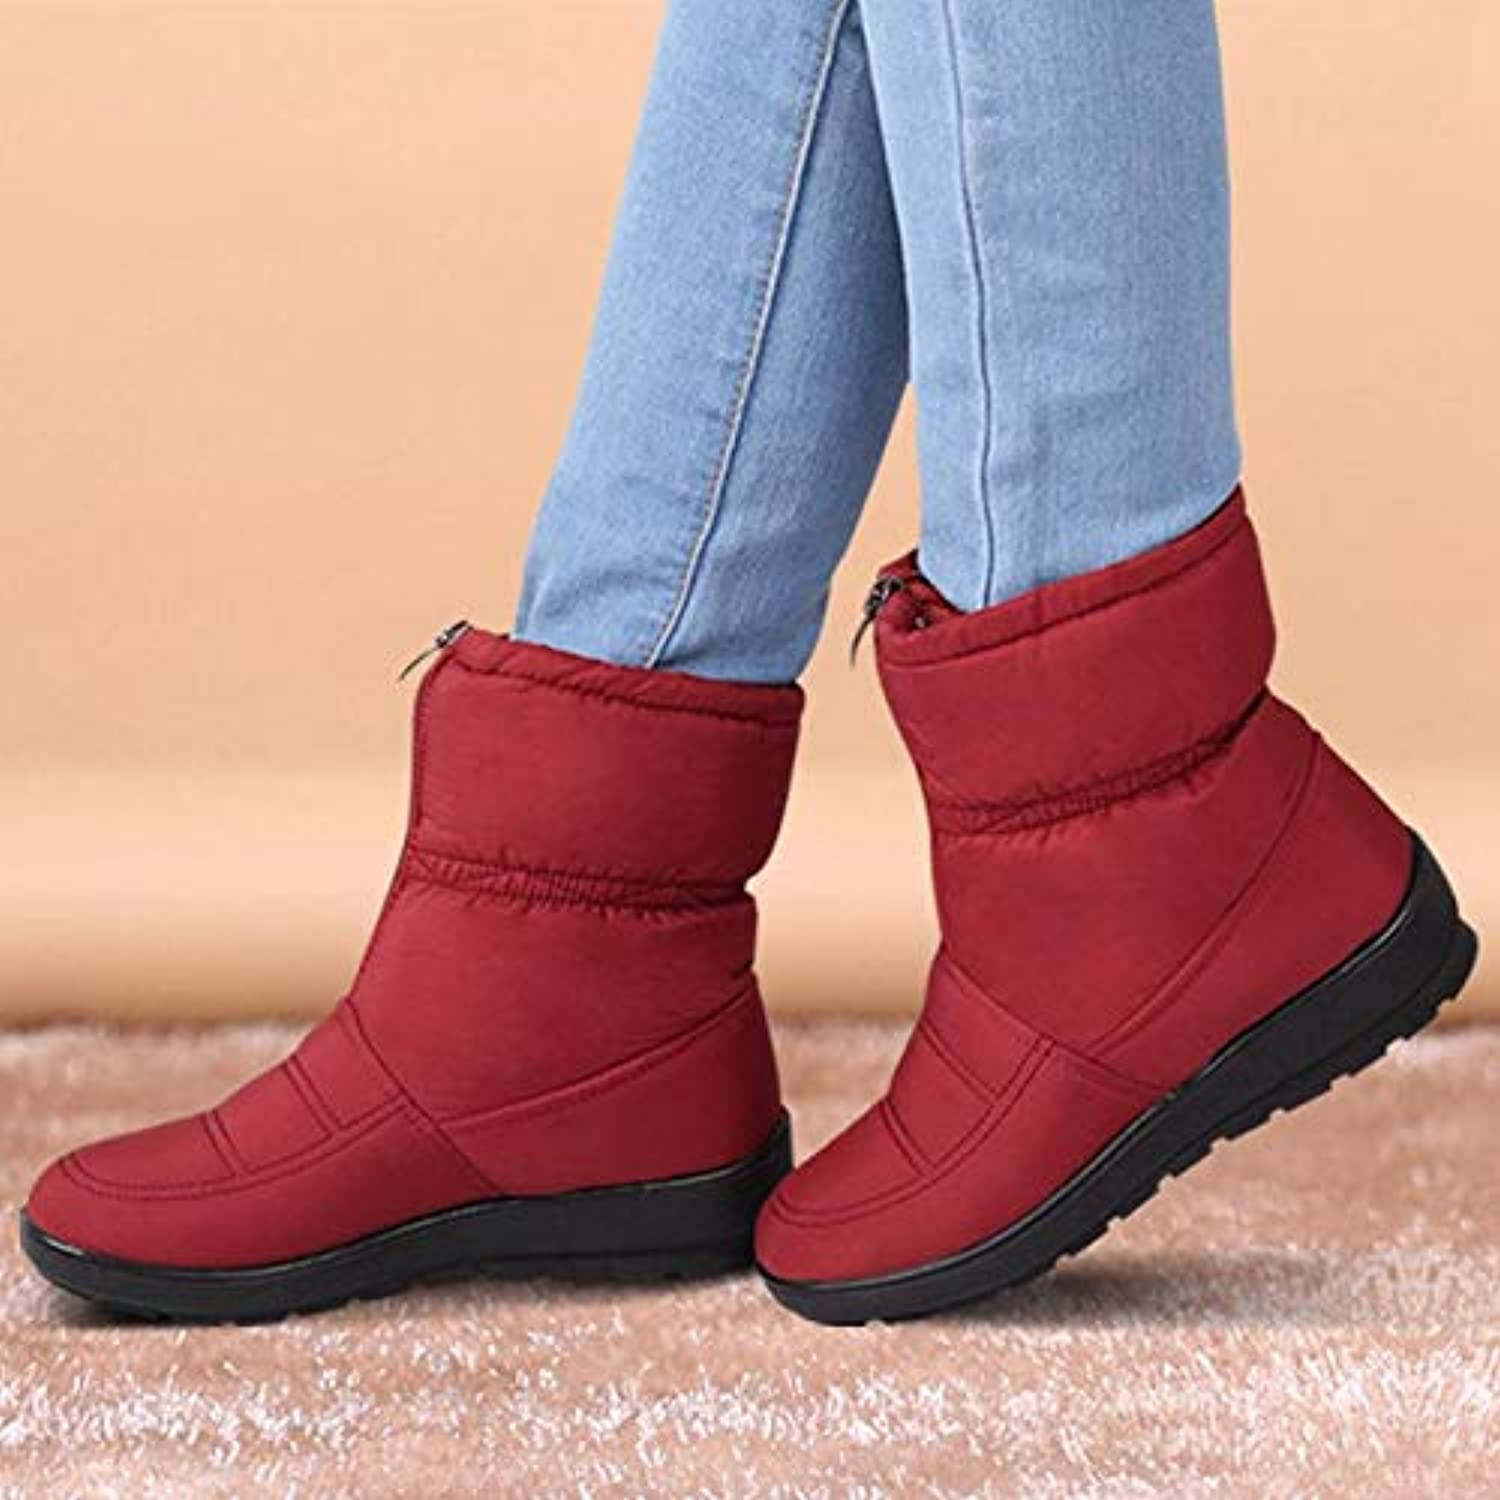 QDL1 ASILETO ASILETO Women Winter Boots Female Down Ankle Boots Waterproof Warm Snow Boots Girls Ladies shoes Woman Warm Fur Botas women S720